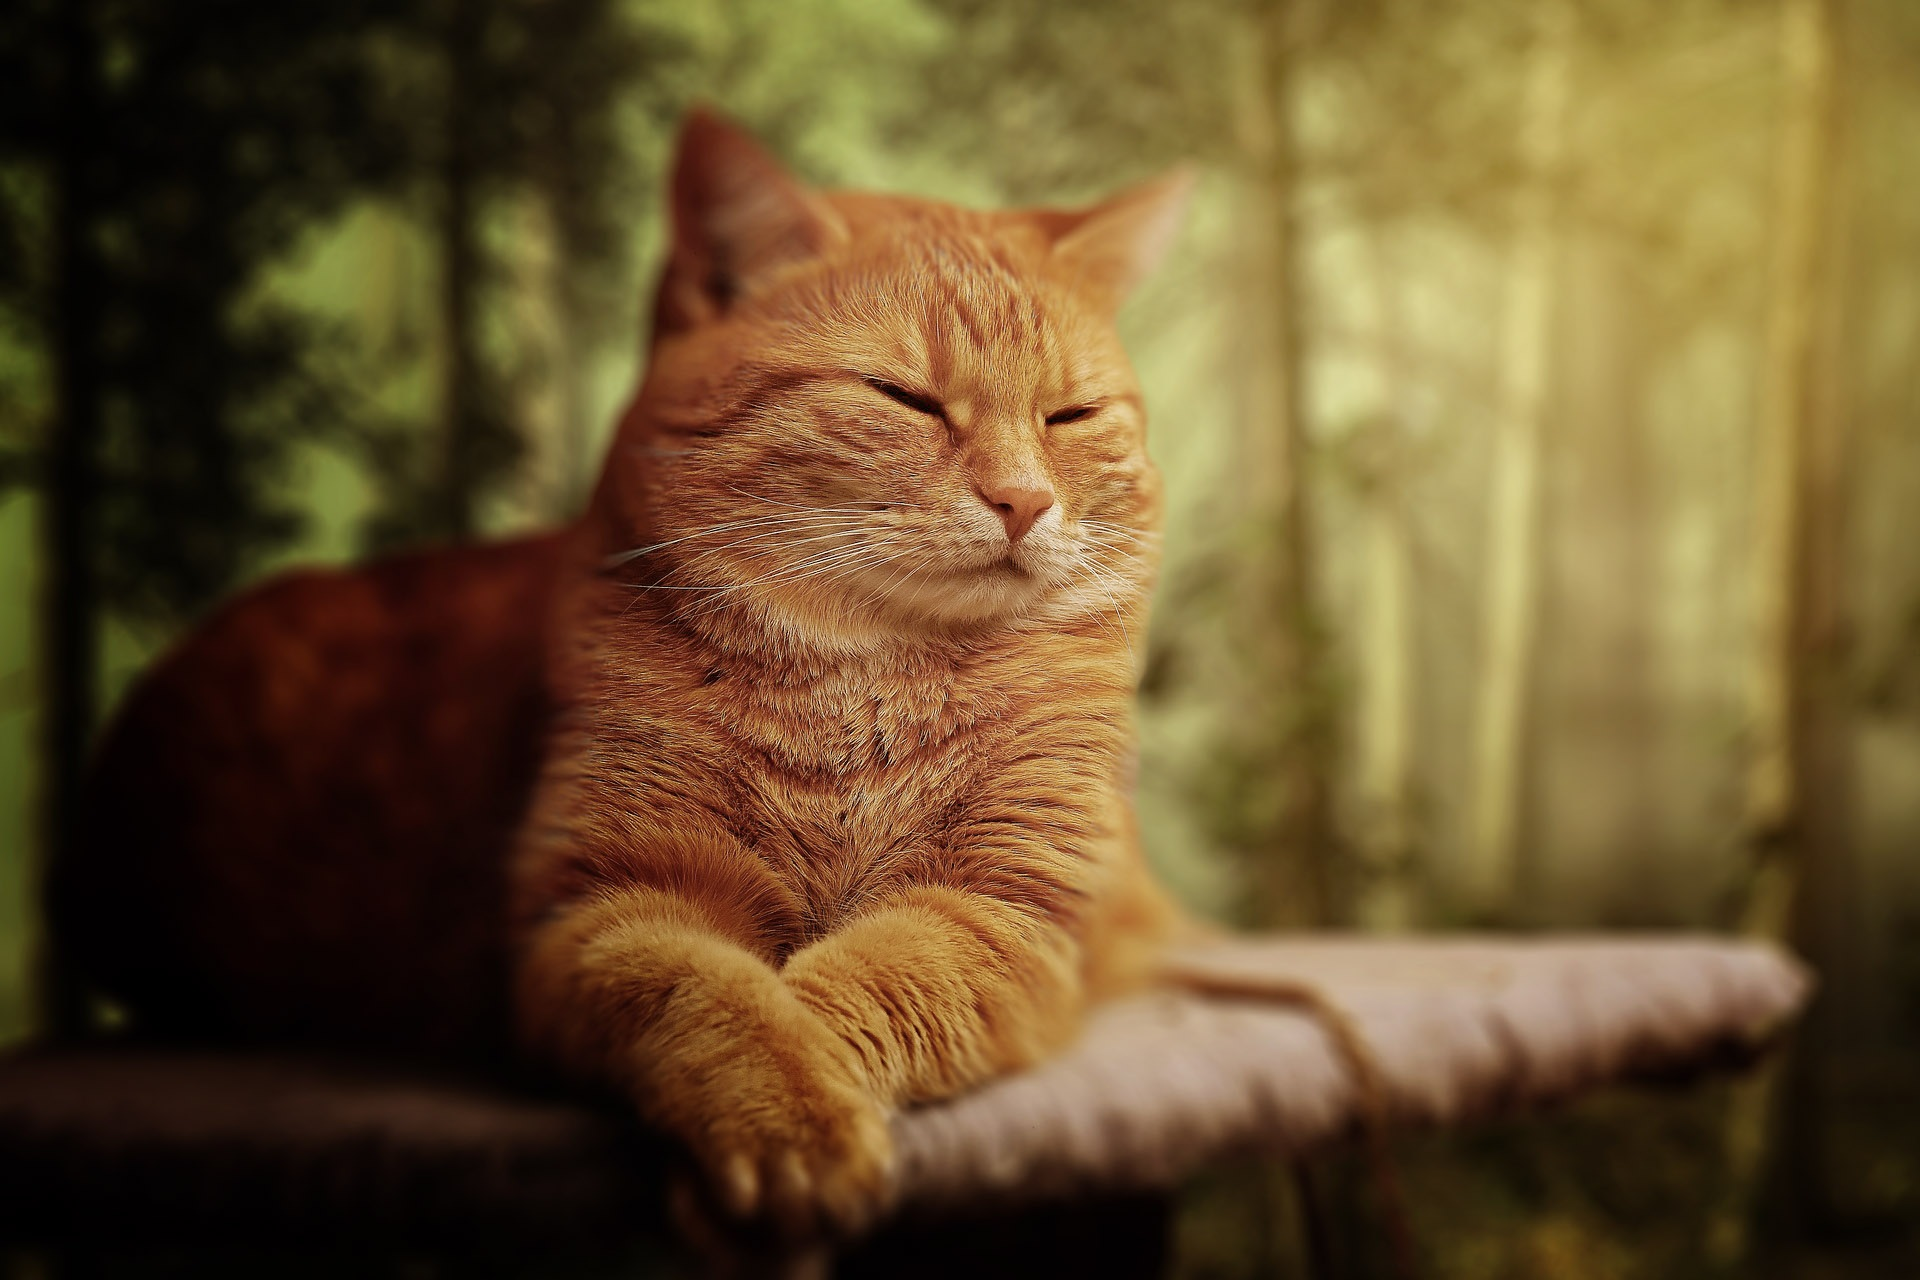 Cute Kitty Wallpapers Apps Yellow Tabby Cat 183 Free Stock Photo